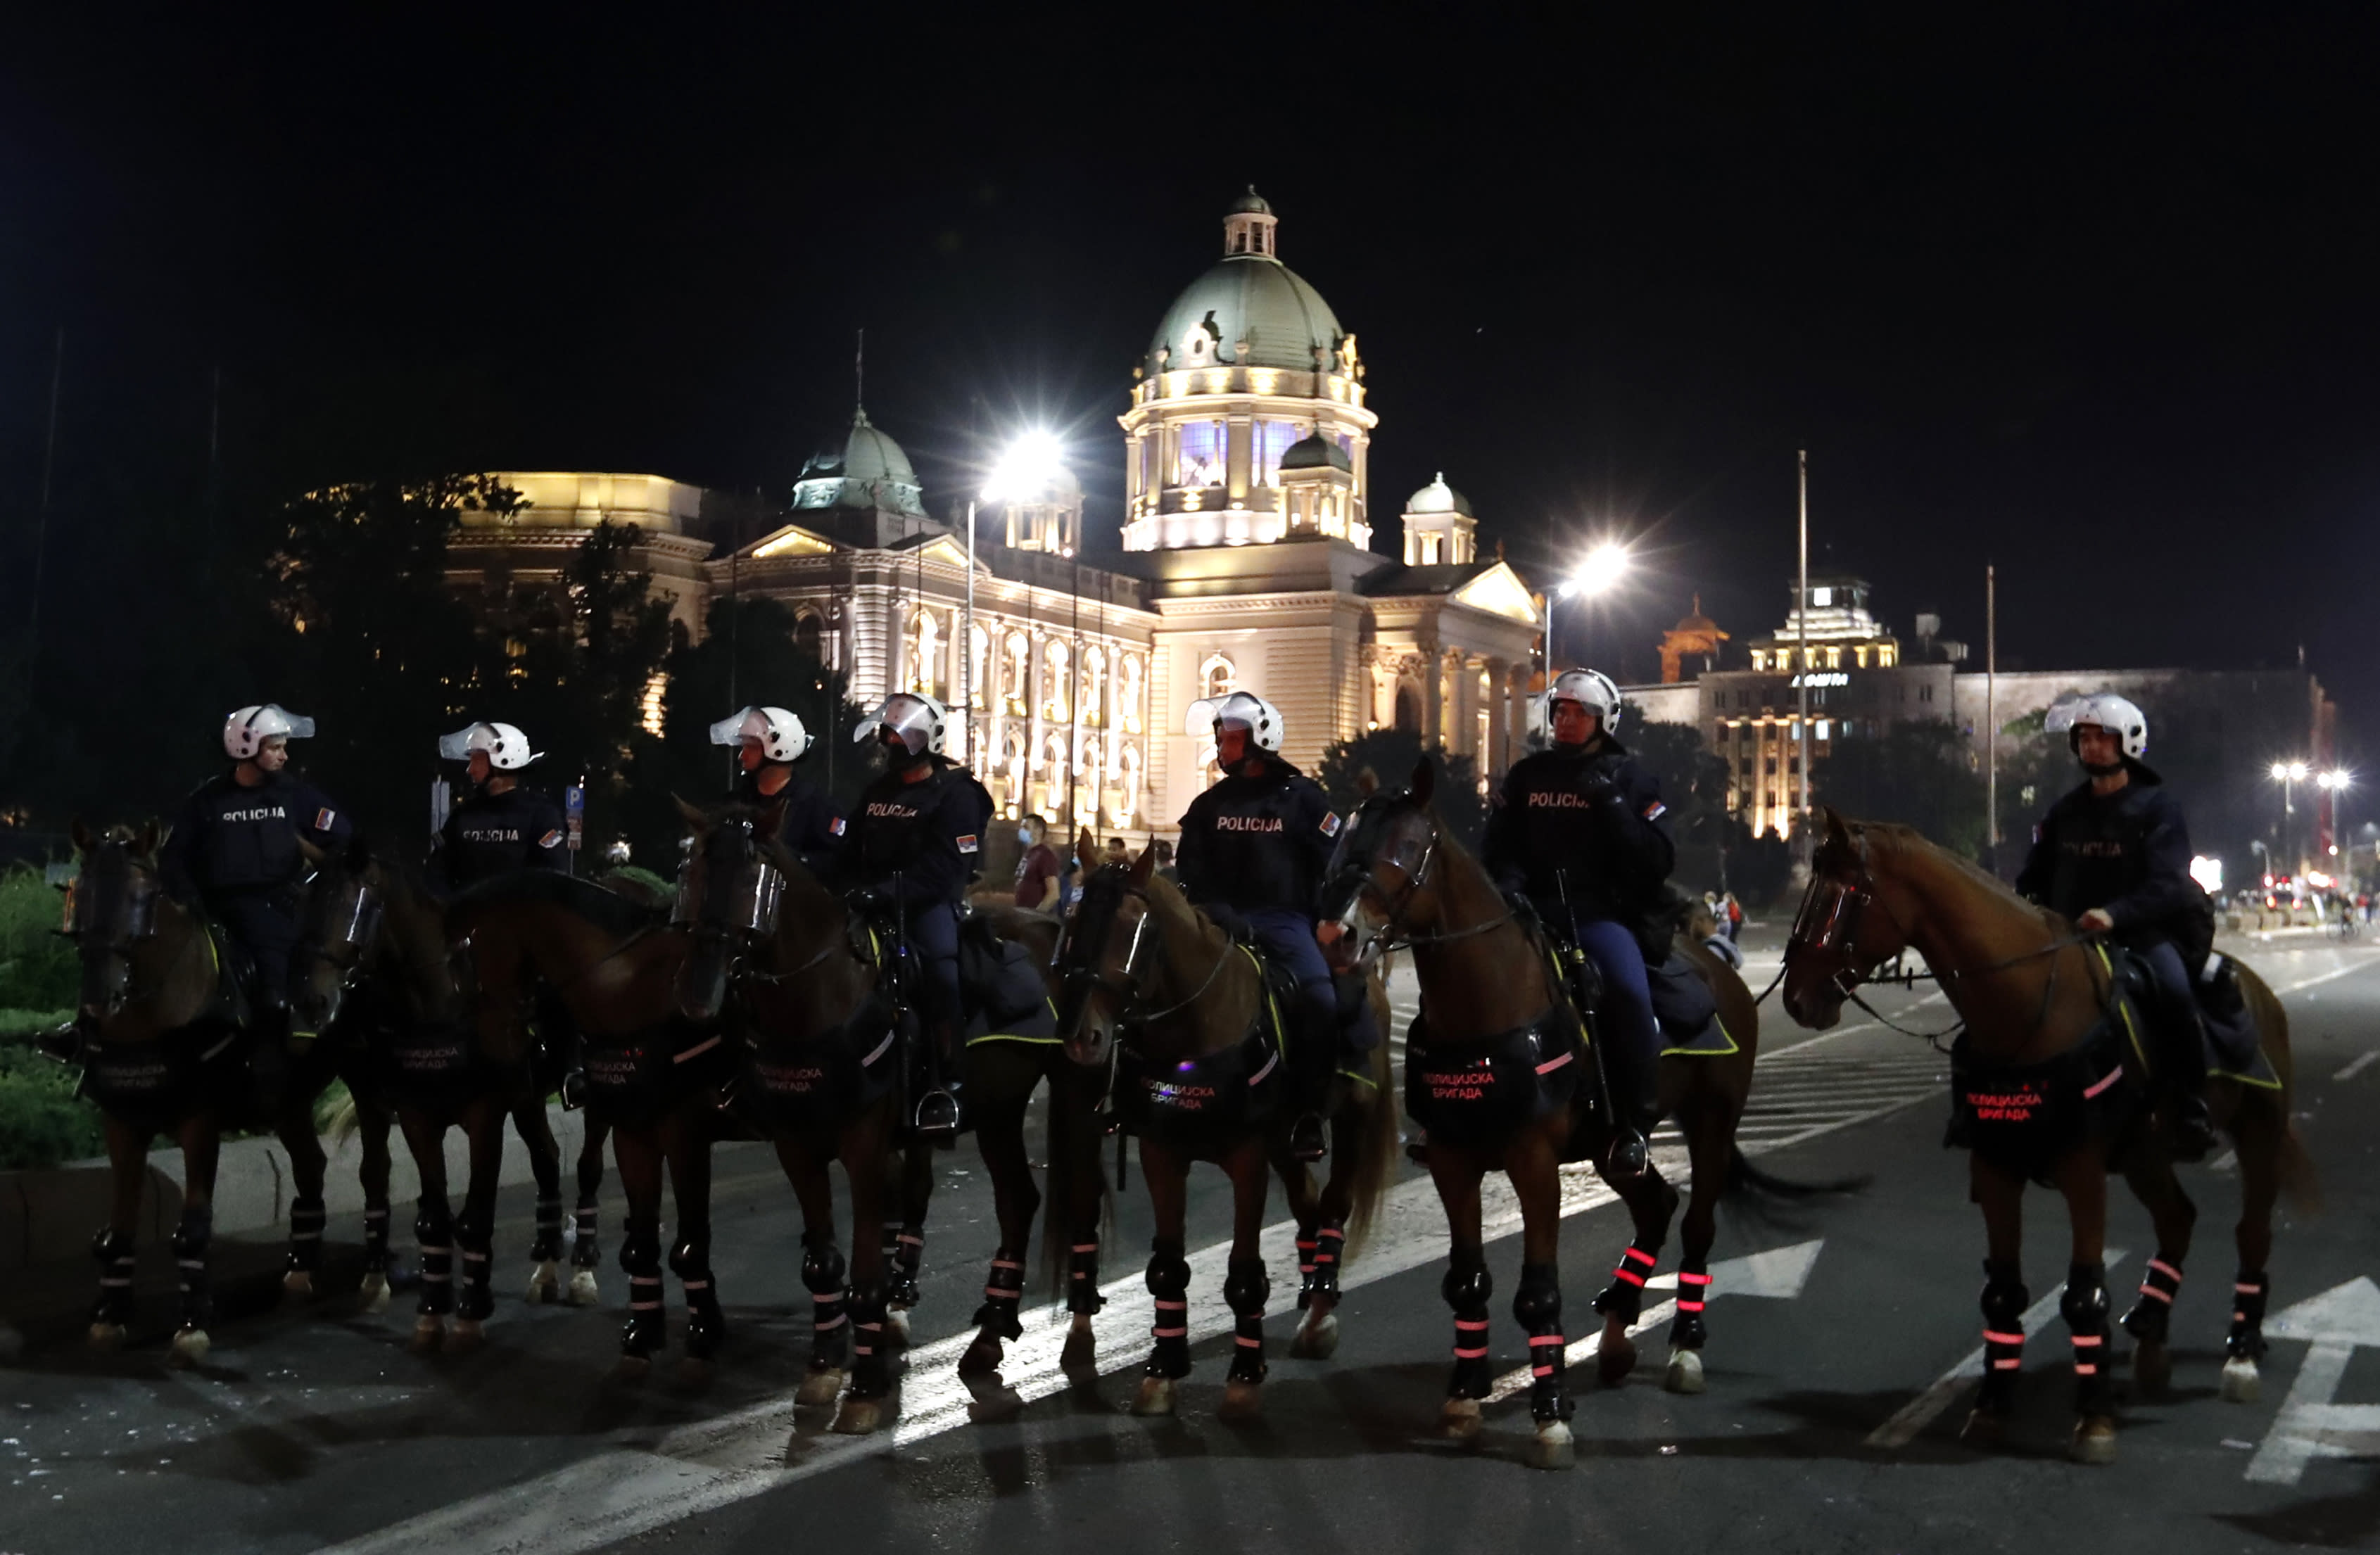 Serbian police guards the area in front of the parliament building after clashing with protesters in Belgrade, Serbia, Wednesday, July 8, 2020. Police have fired tear gas at protesters in Serbia's capital during the second day of demonstrations against the president's handling of the country's coronavirus outbreak. President Aleksandar Vucic backtracked on his plans to reinstate a coronavirus lockdown in Belgrade this week, but it didn't stop people from firing flares and throwing stones while trying to storm the downtown parliament building. (AP Photo/Darko Vojinovic)